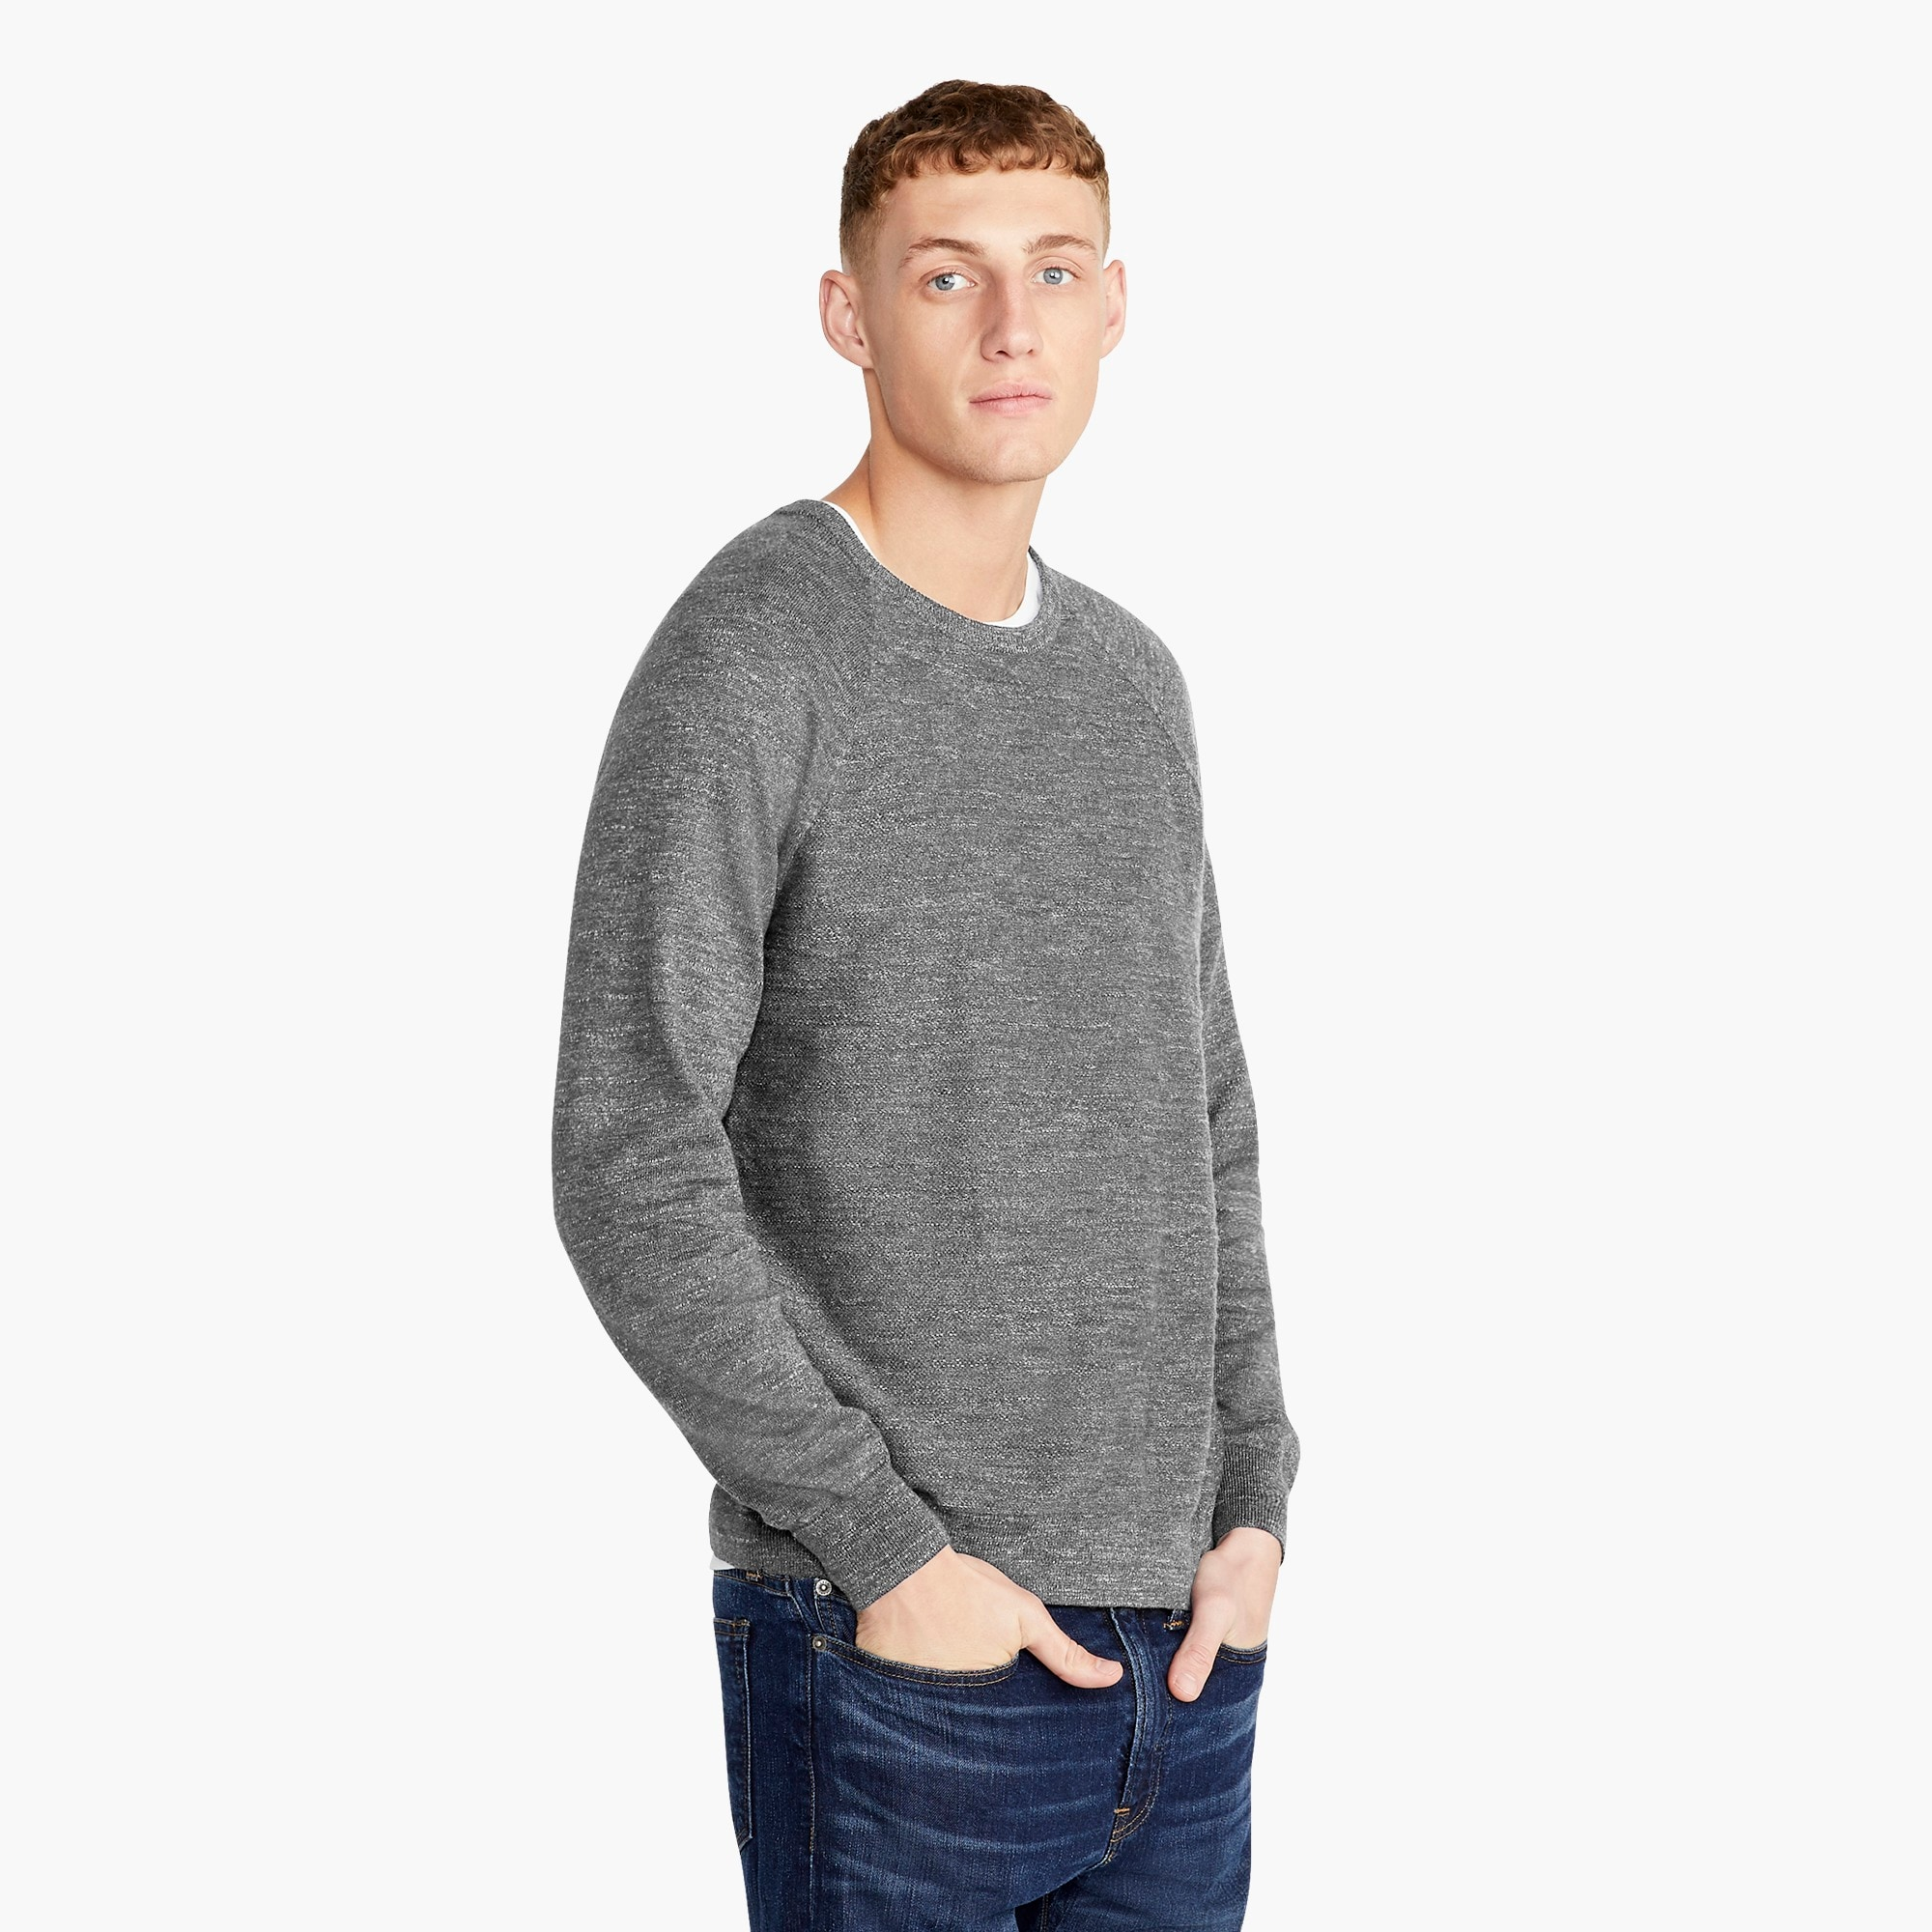 mens Rugged cotton sweater